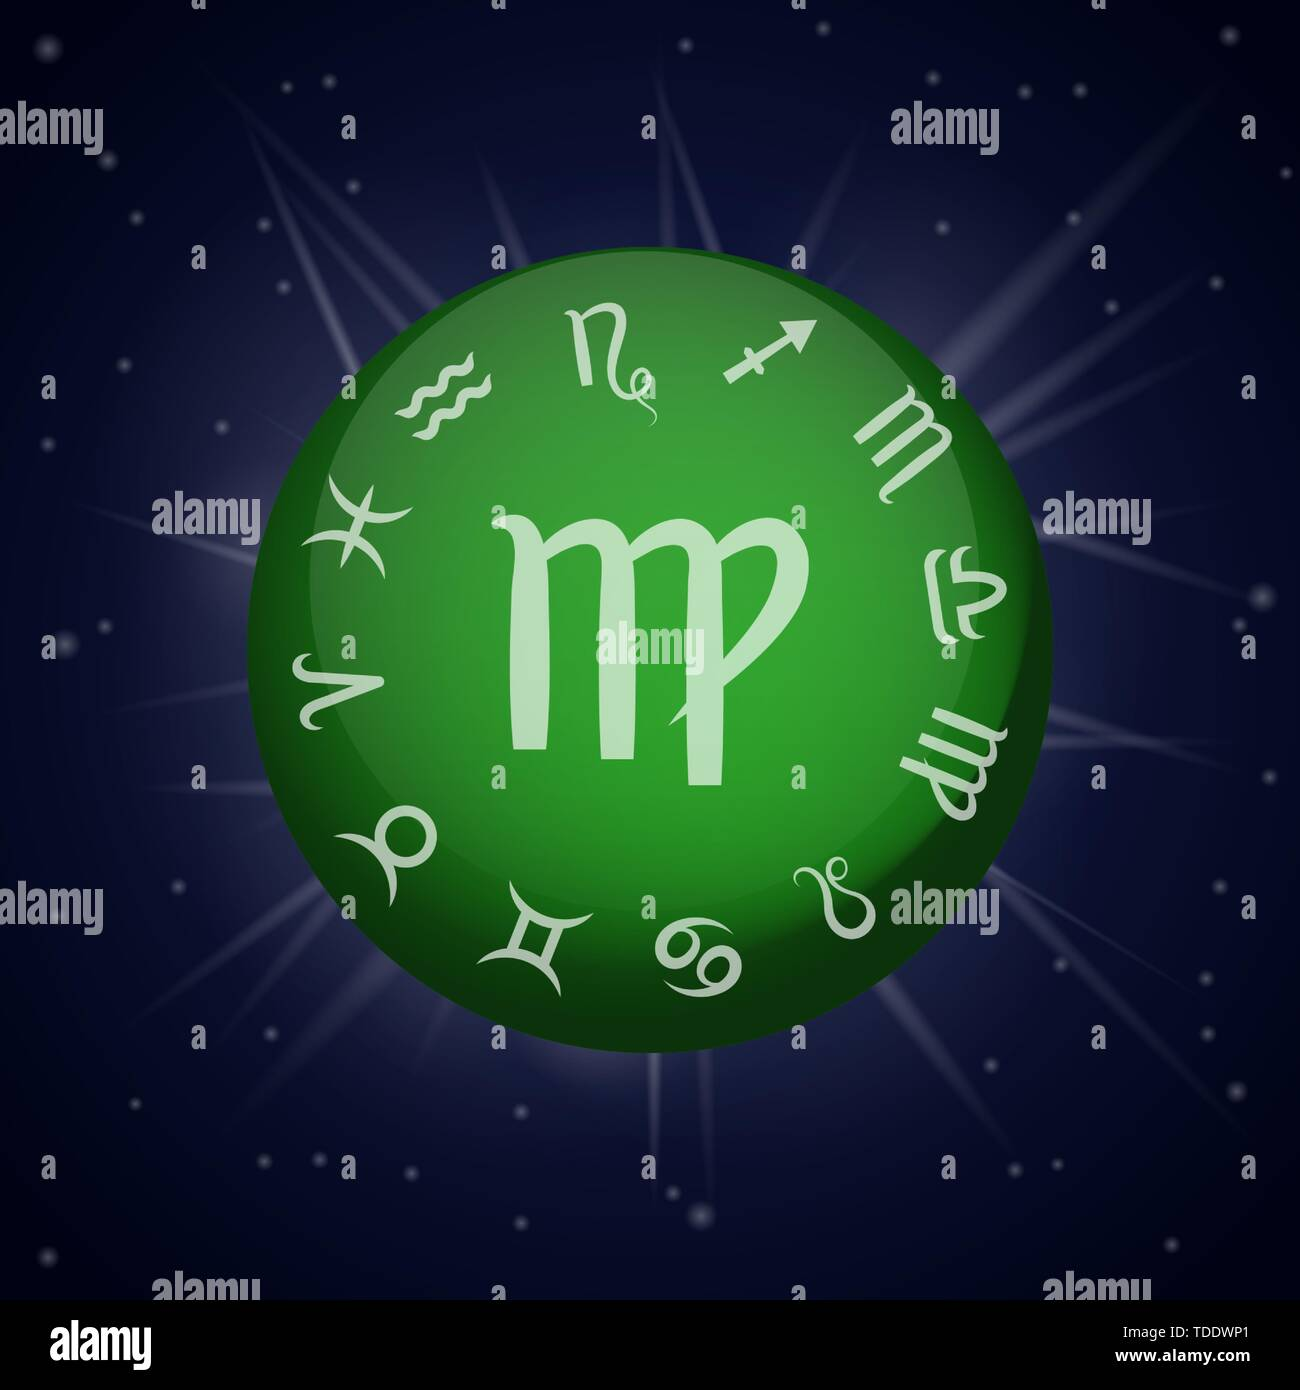 Zodiac Earth Sign Stock Photos & Zodiac Earth Sign Stock Images - Alamy